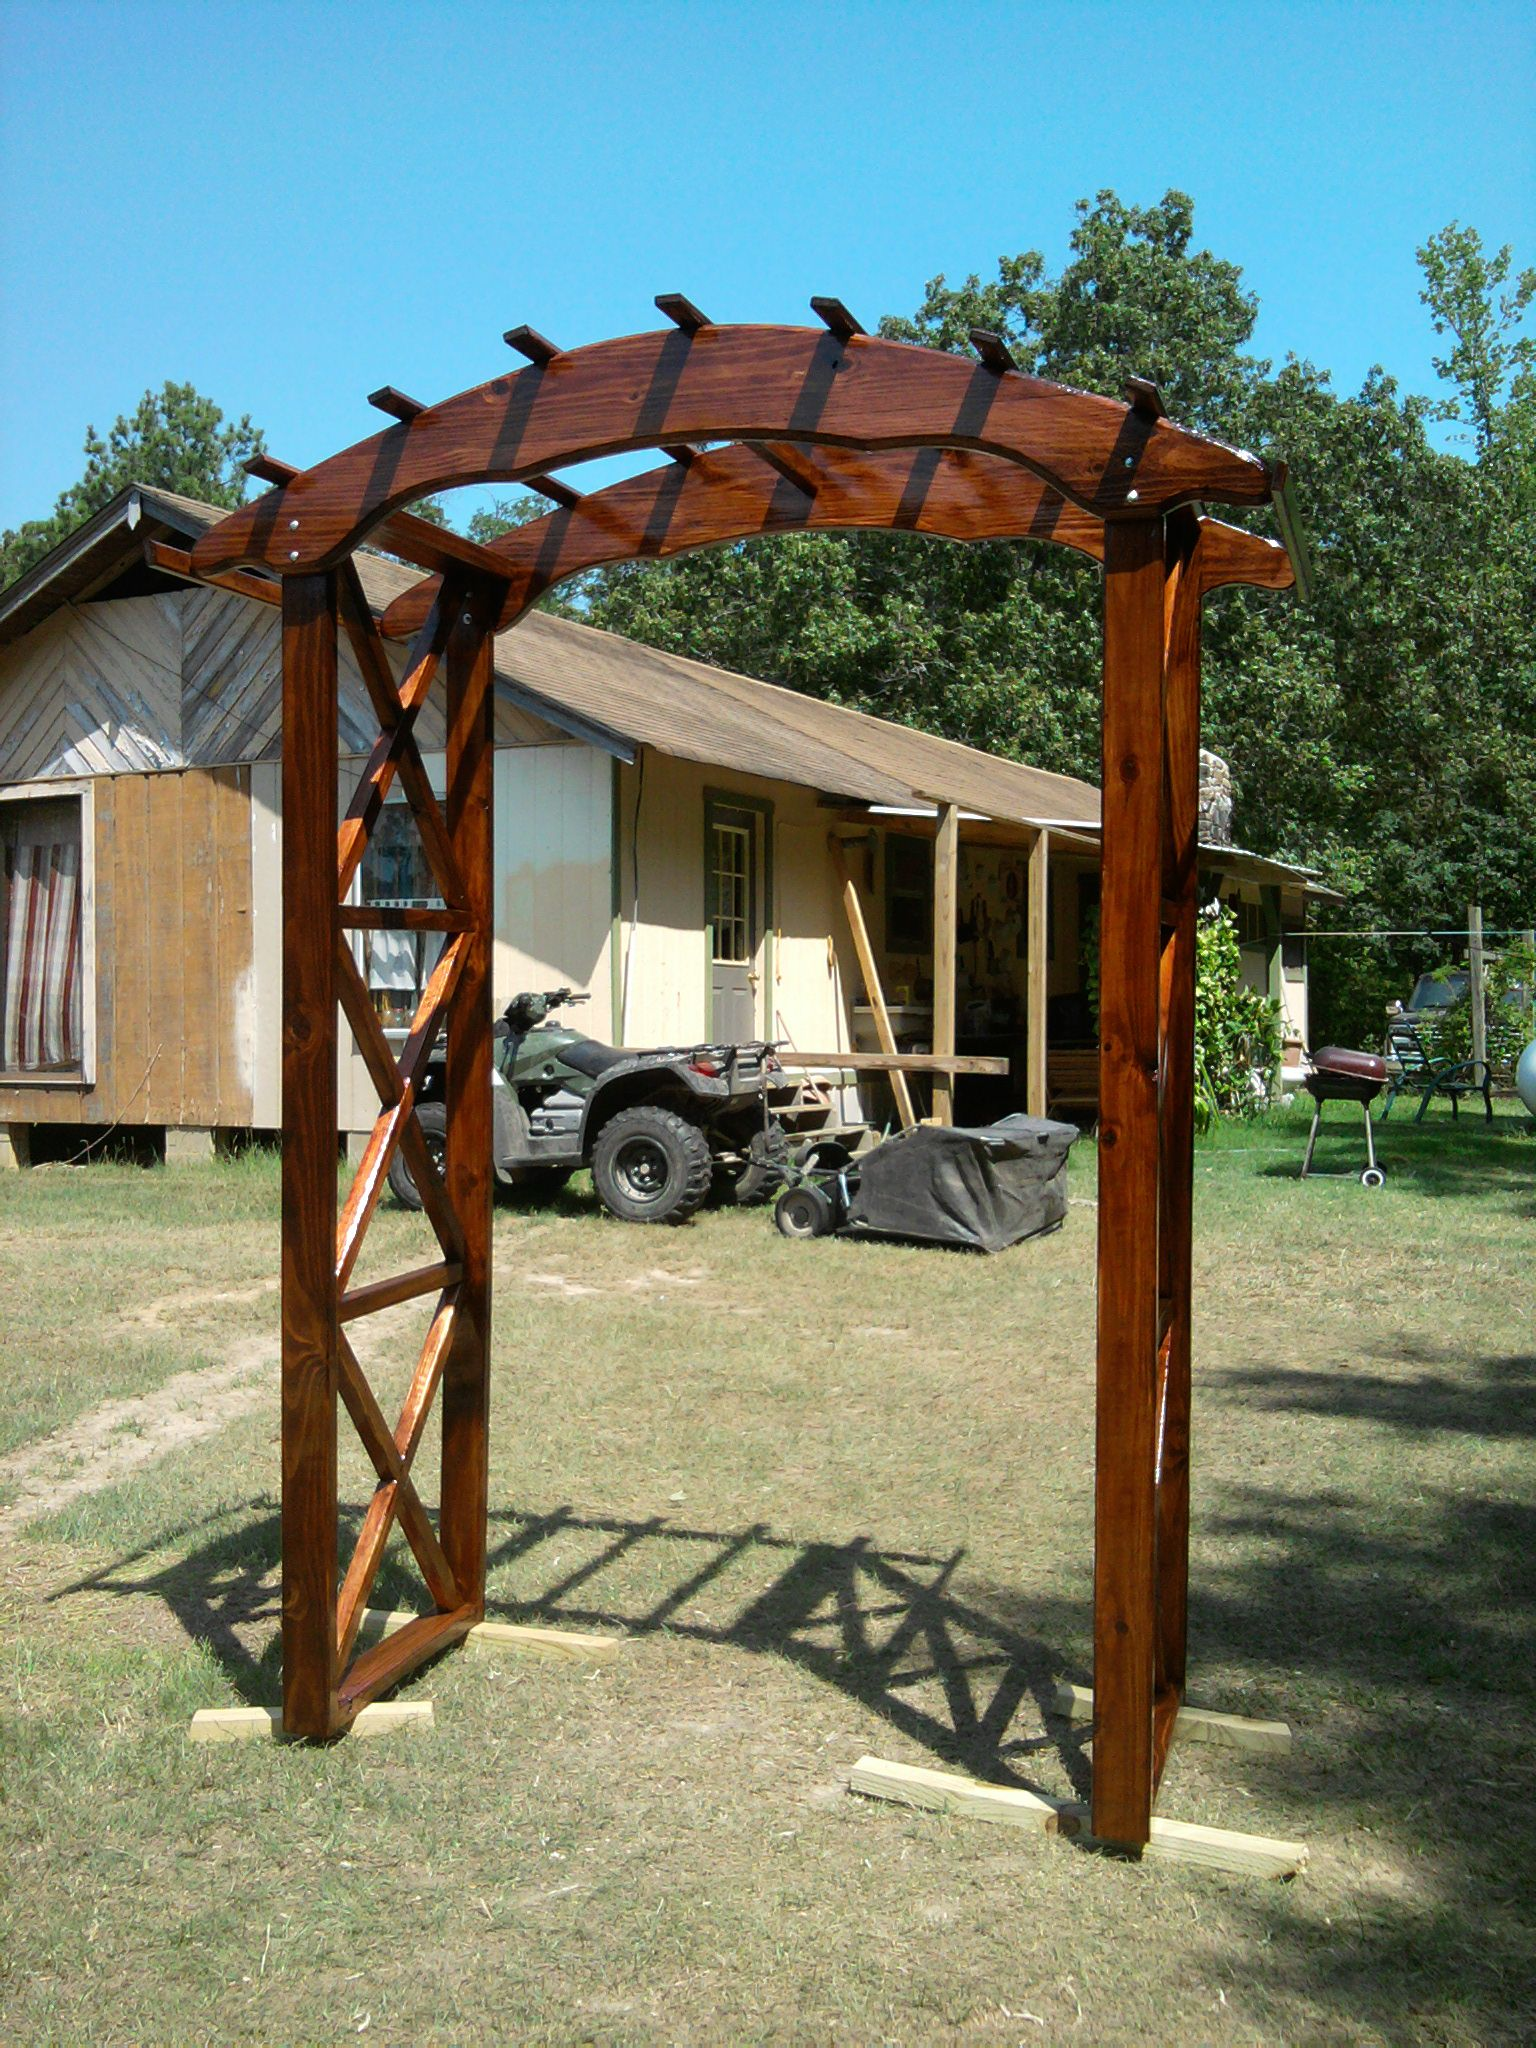 Rustic arbor plans rustic x wedding arch do it yourself home rustic arbor plans rustic x wedding arch do it yourself home projects from ana solutioingenieria Image collections